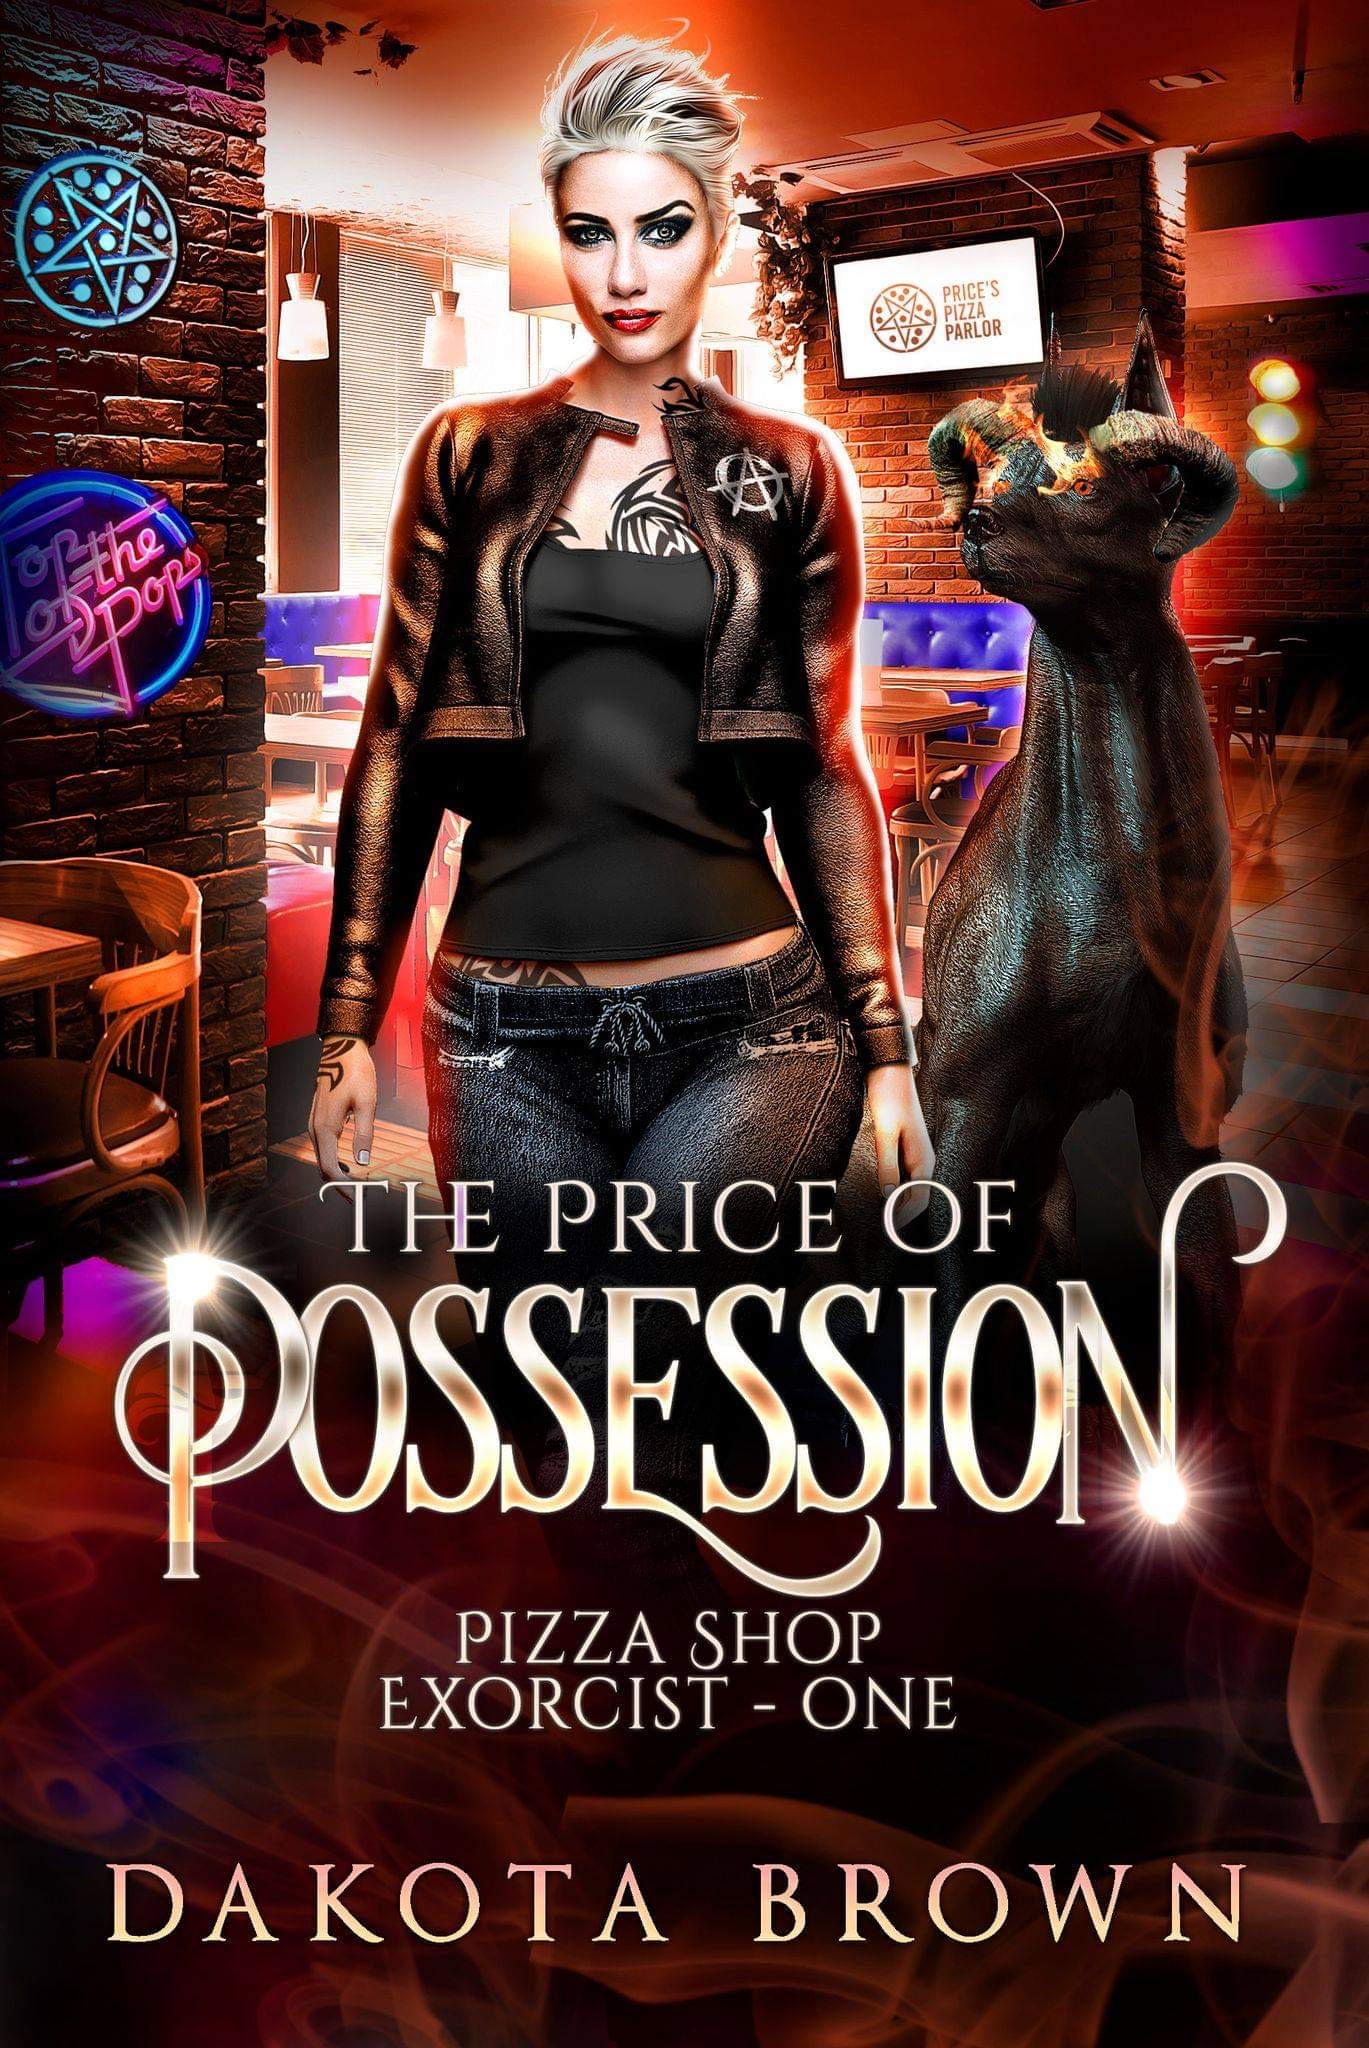 The Price of Possession (Pizza Shop Exorcist #1)